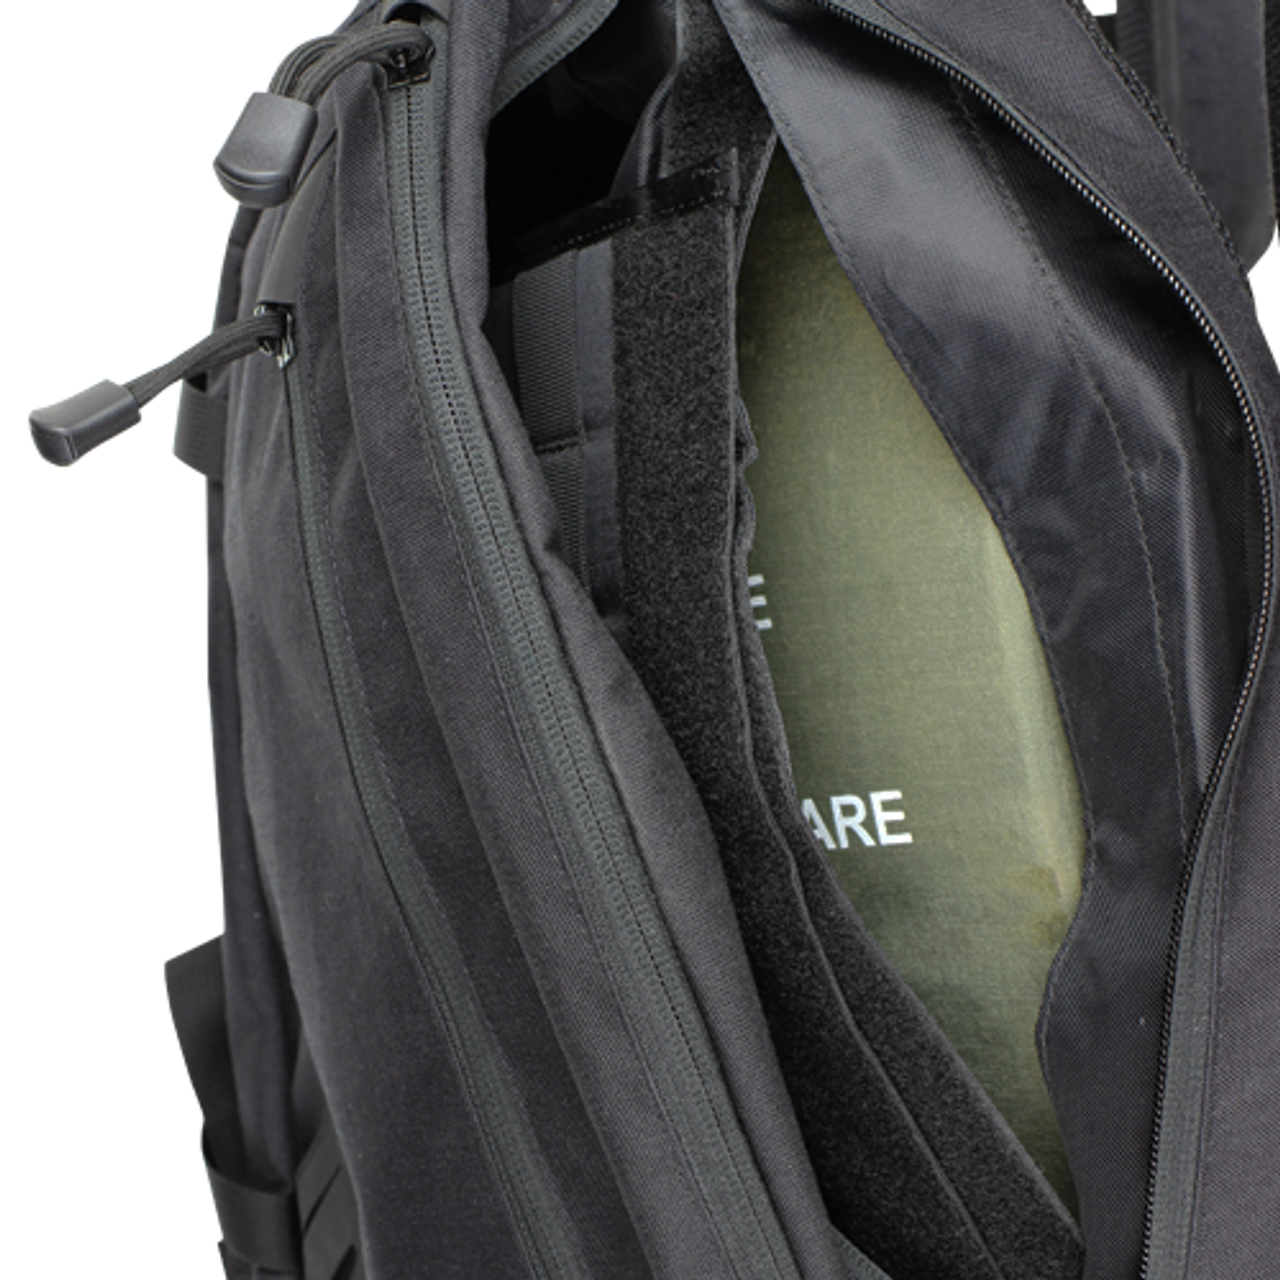 CONDOR 11110: Sector Sling Pack